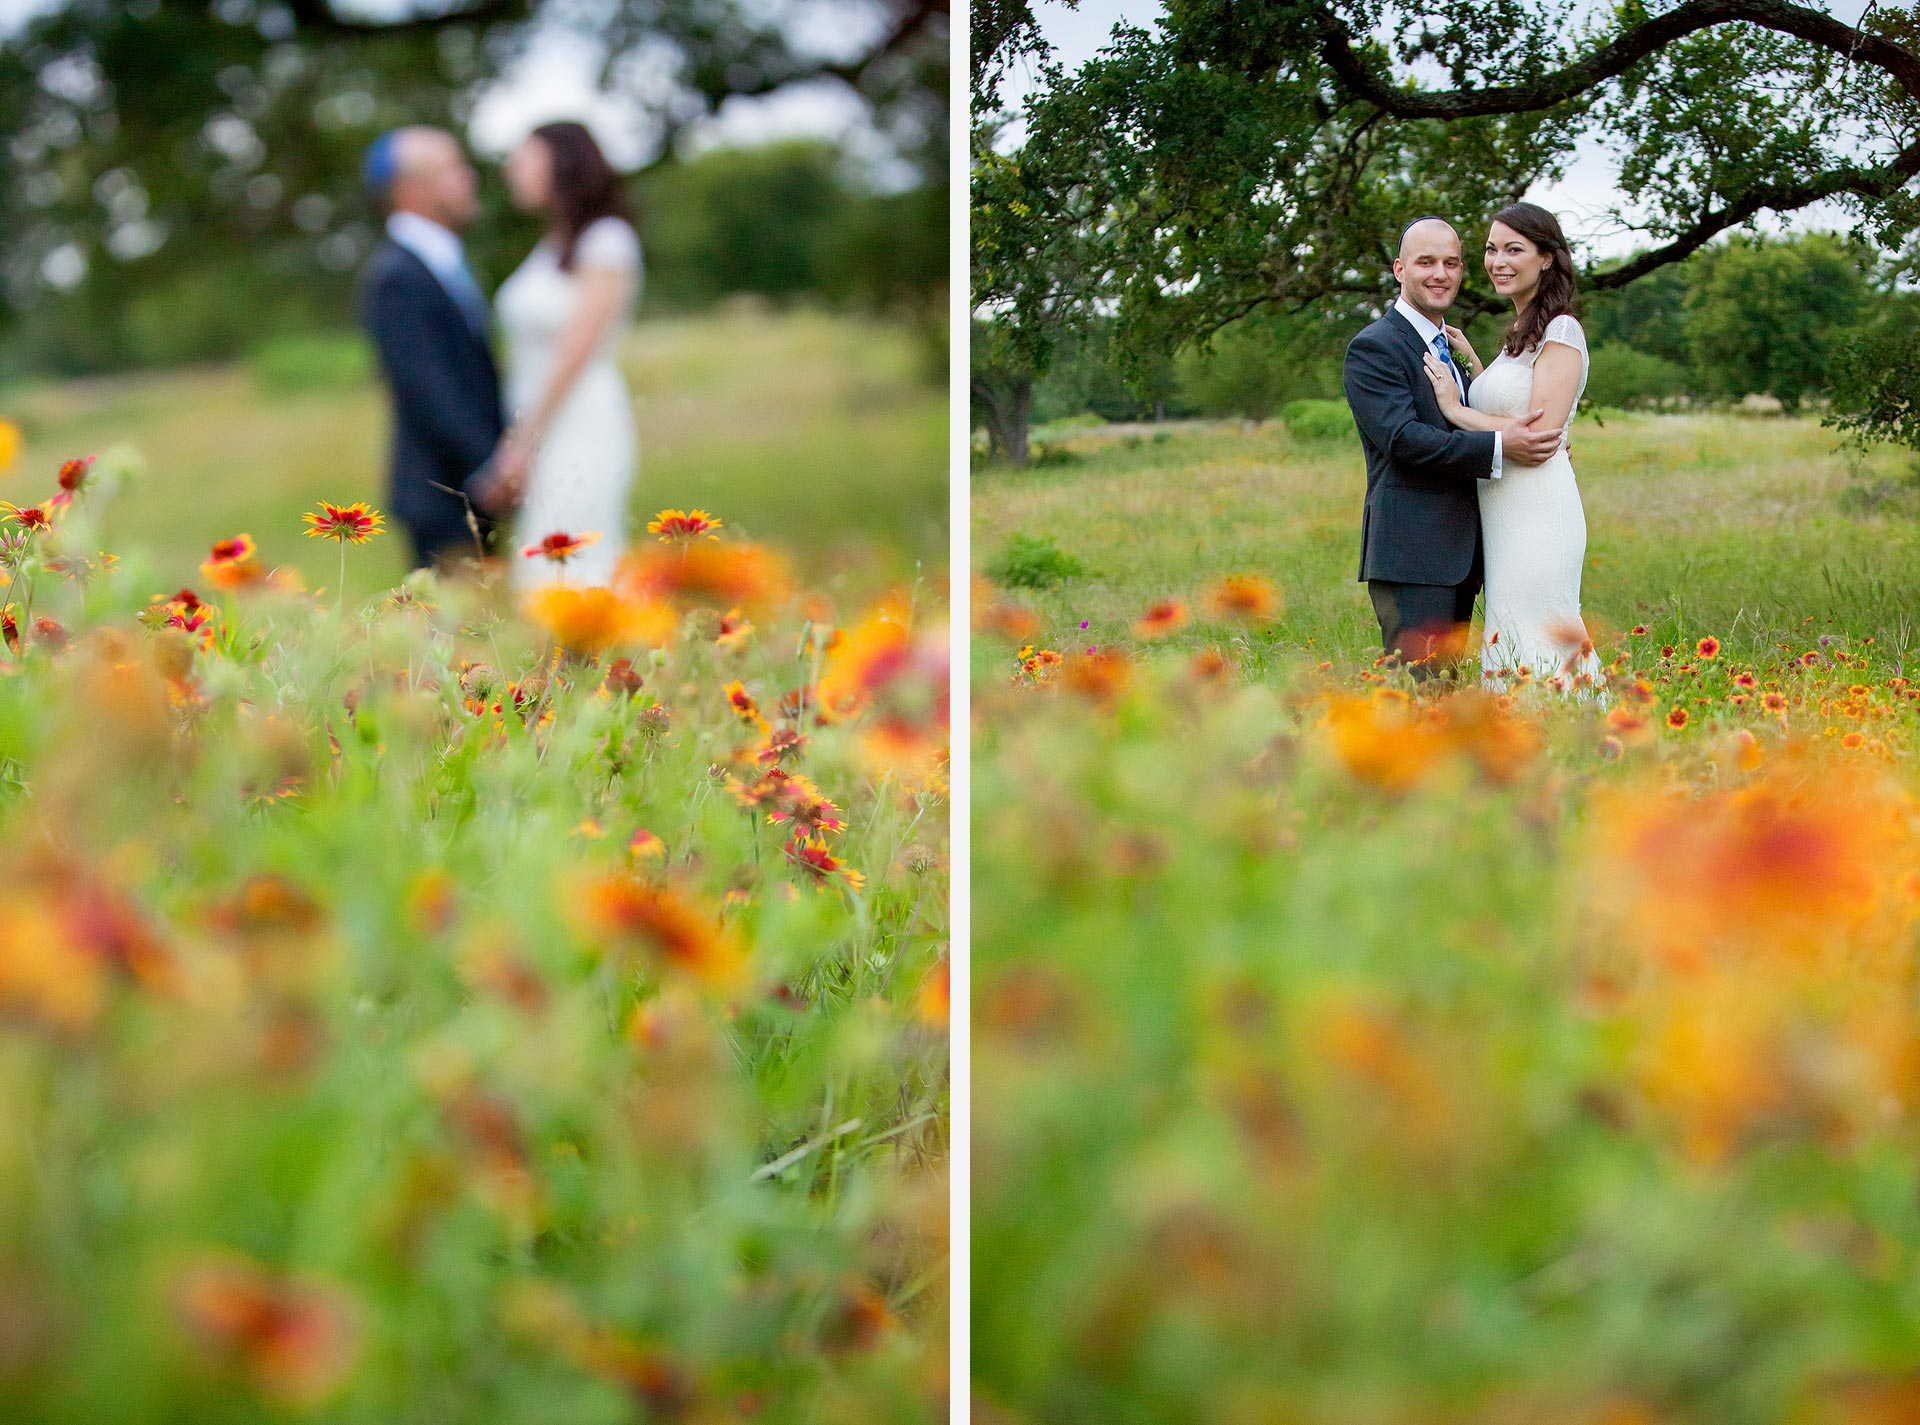 Wedding Photography in Wildflowers